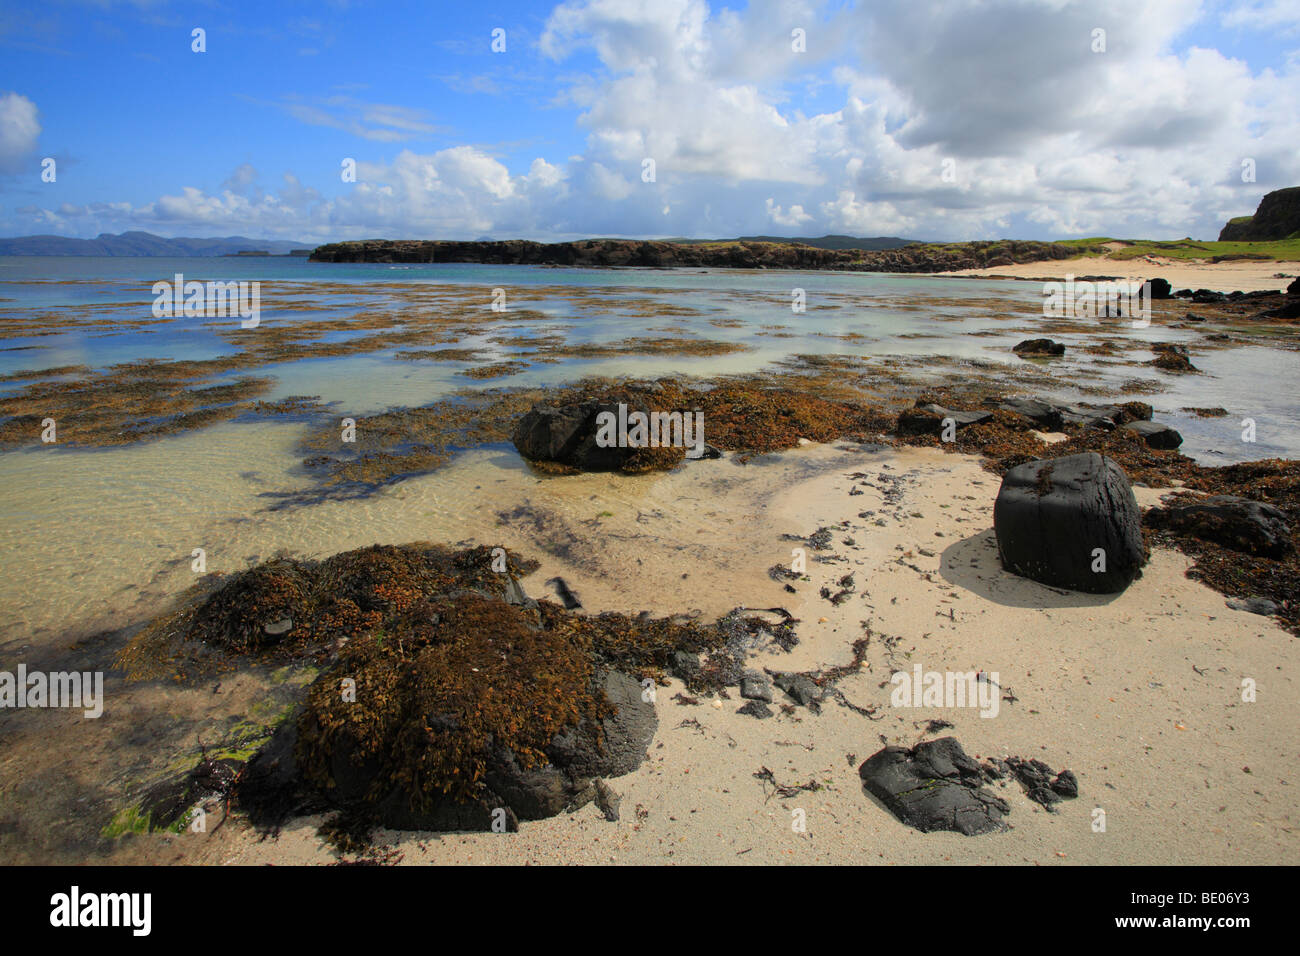 The beach at Port na Ba on the North West coast of the Isle of Mull, Scotland. - Stock Image